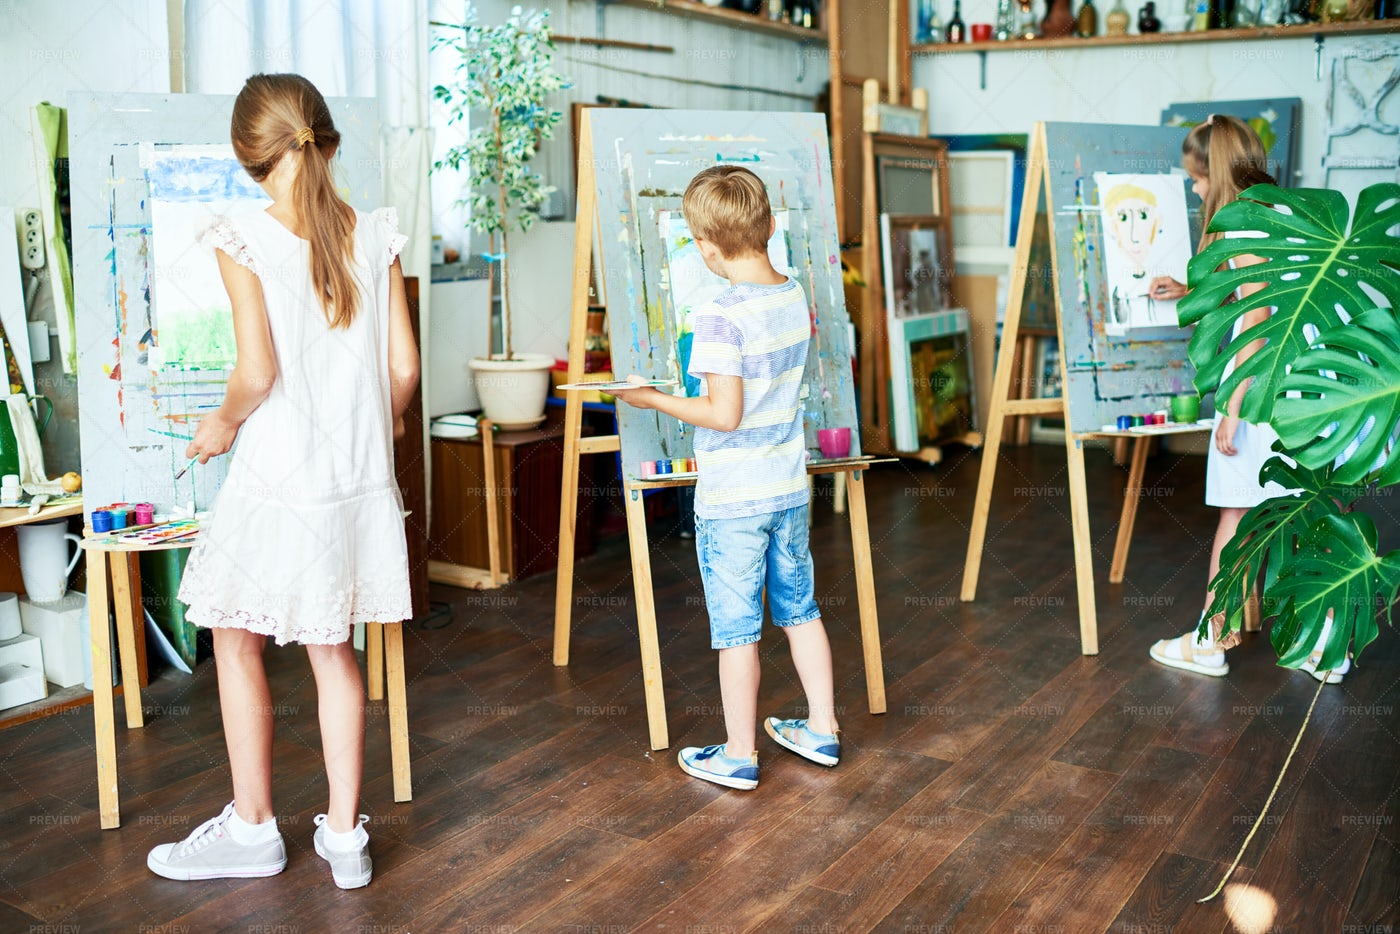 Gifted Pupils Drawing At Art Studio: Stock Photos